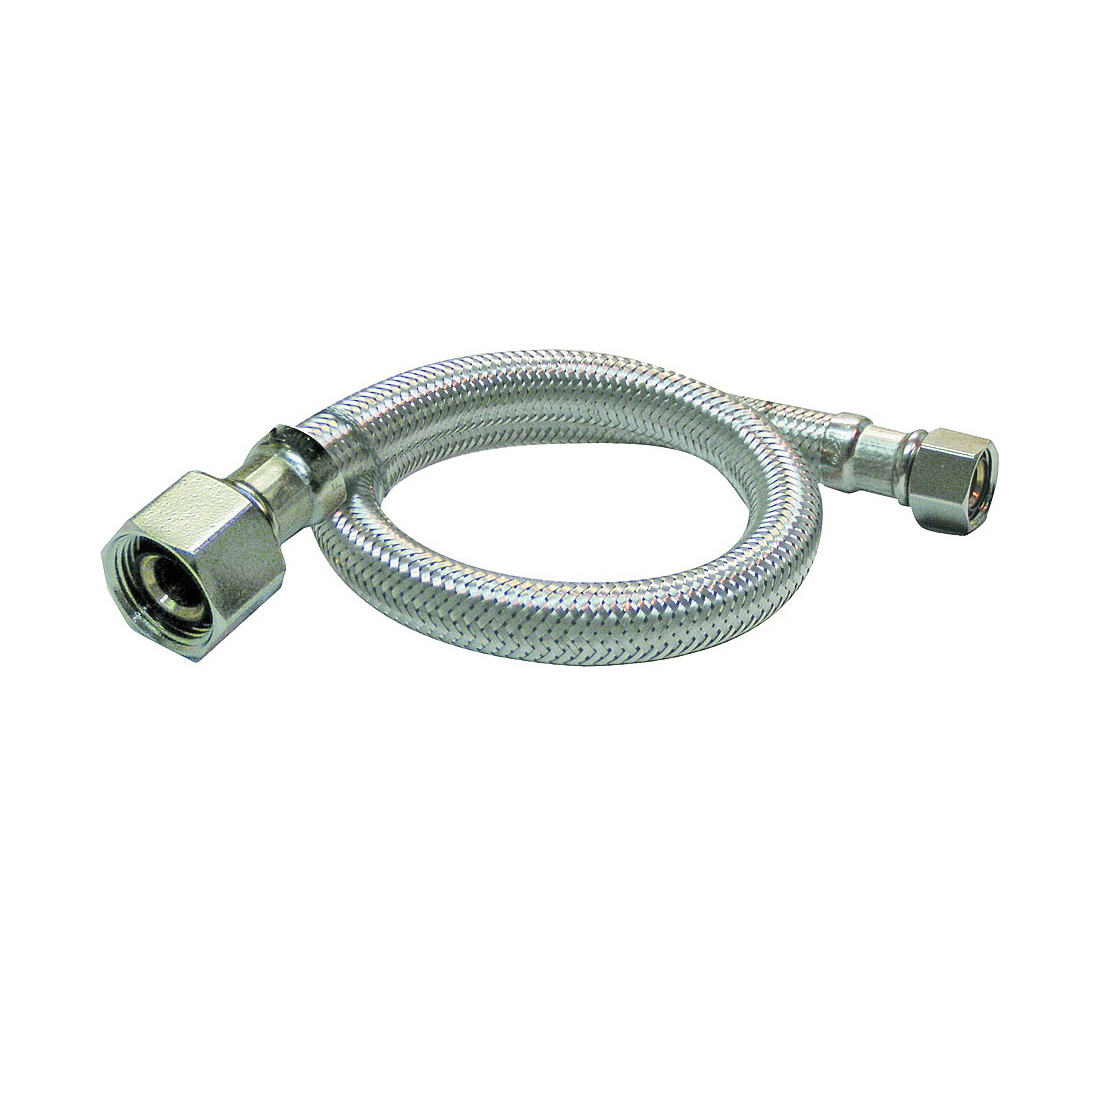 Picture of Plumb Pak EZ Series PP23817 Sink Supply Tube, 1/2 in Inlet, FIP Inlet, 1/2 in Outlet, FIP Outlet, 16 in L